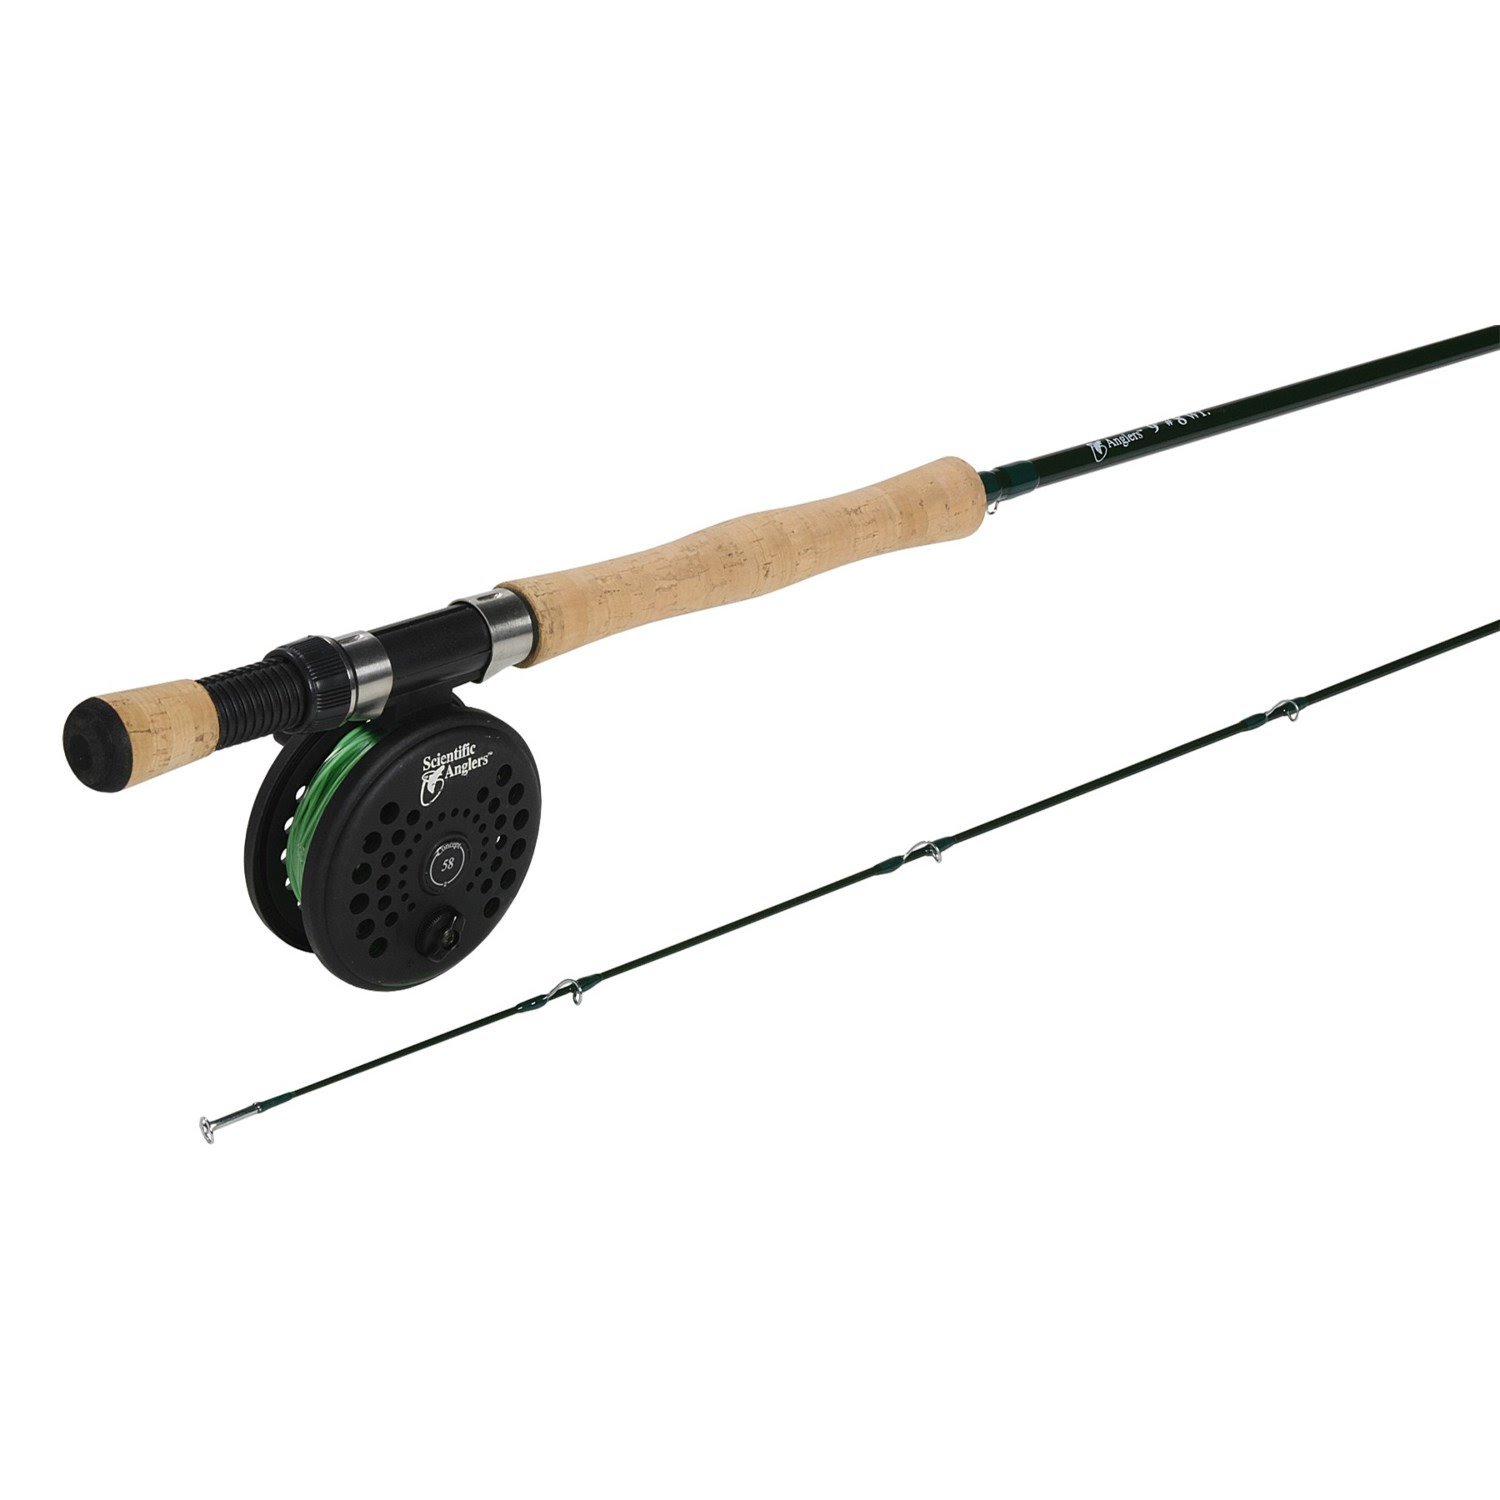 Fishing Pole Review Pink Fishing Rod And Reel Best Survival Tools Reviews